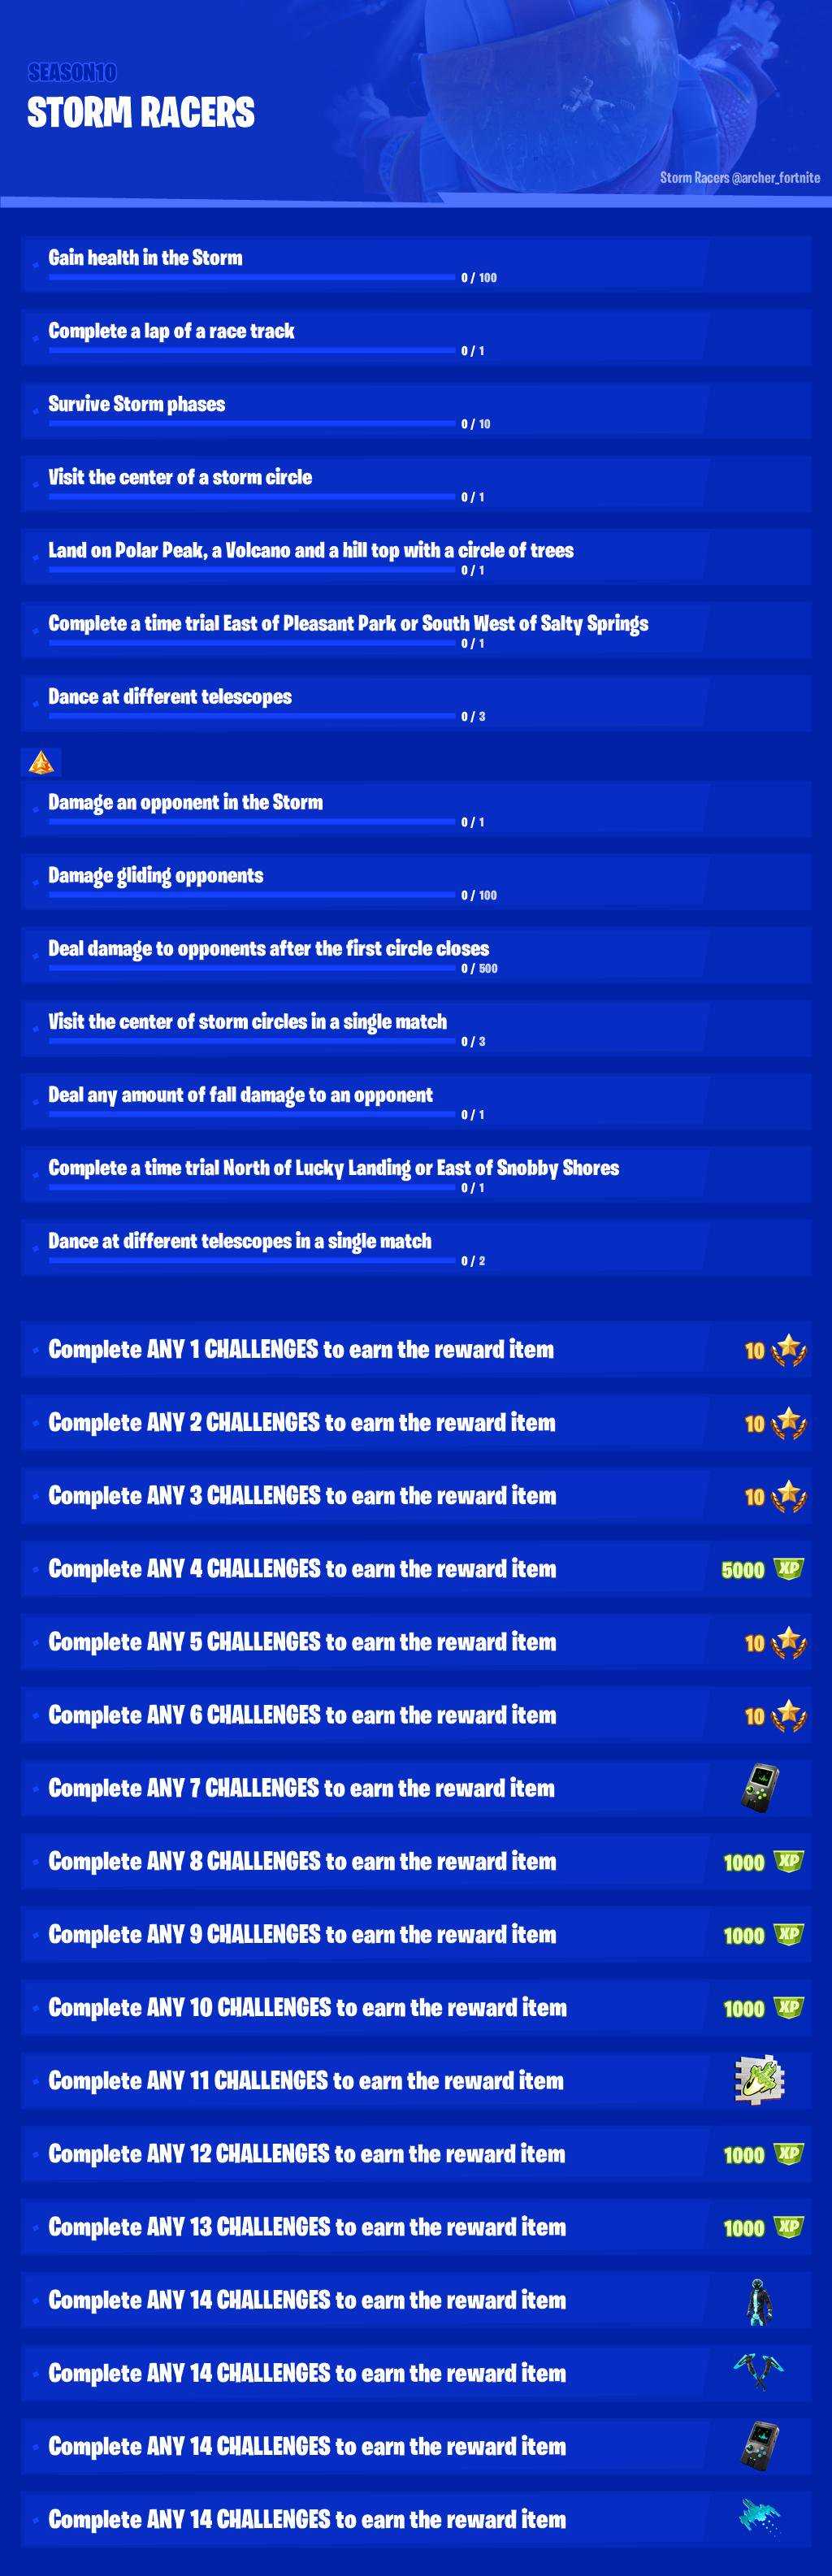 Fortnite Season 10 Week 8 Challenges Leaked - Storm Racers Mission Objectives